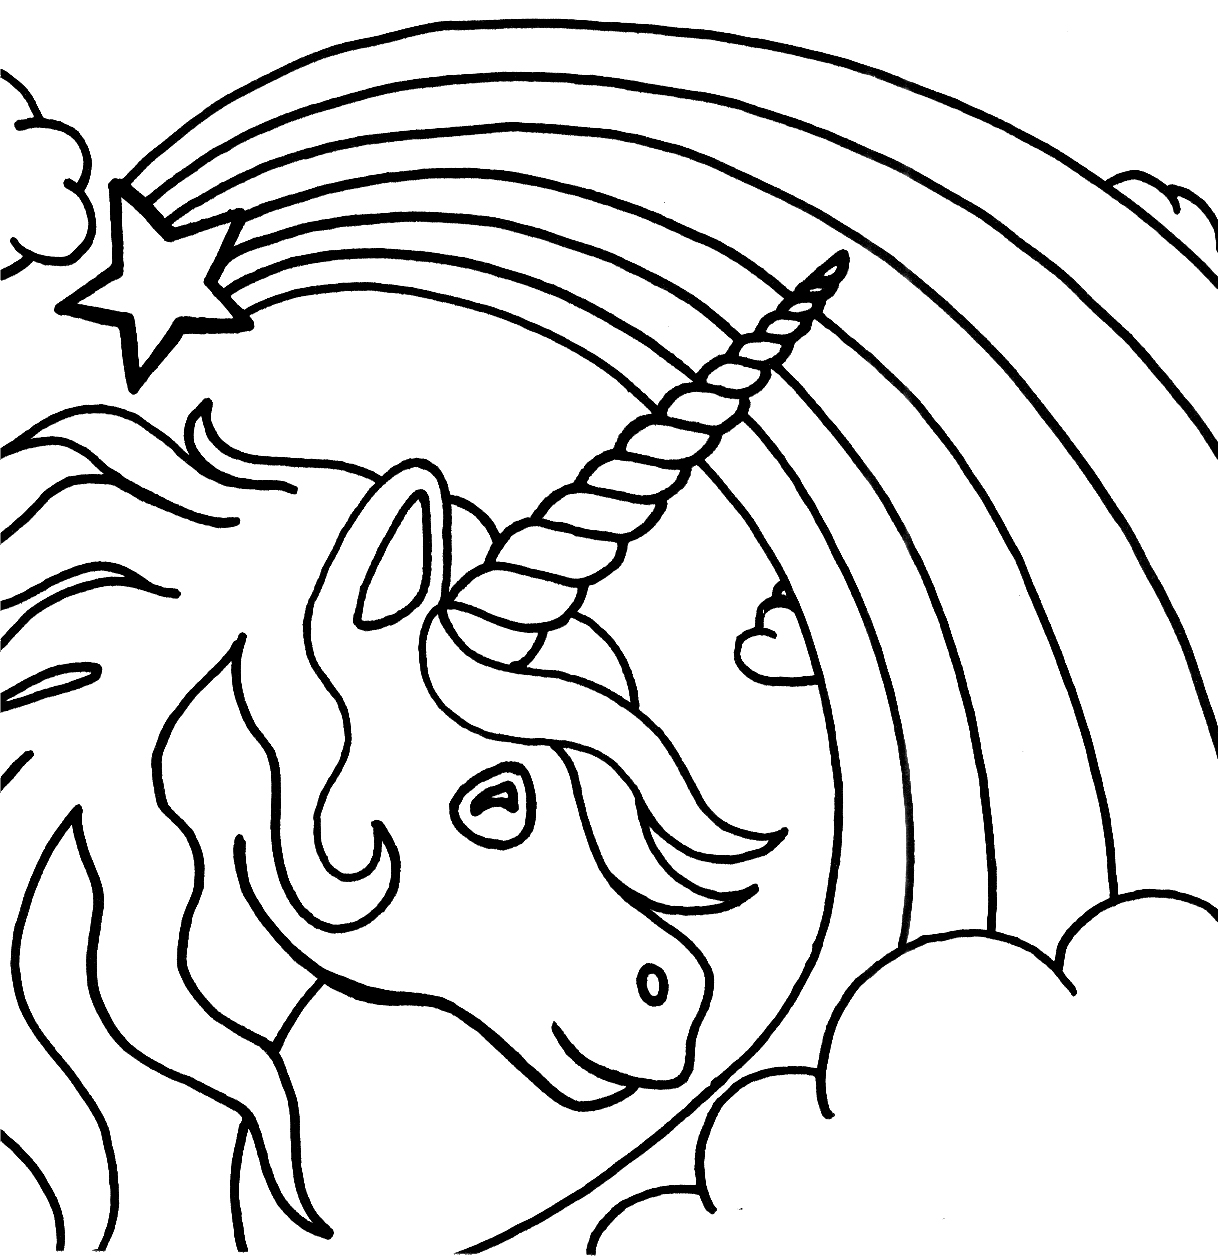 unicorn coloring pages for kids - Colouring In For Kids